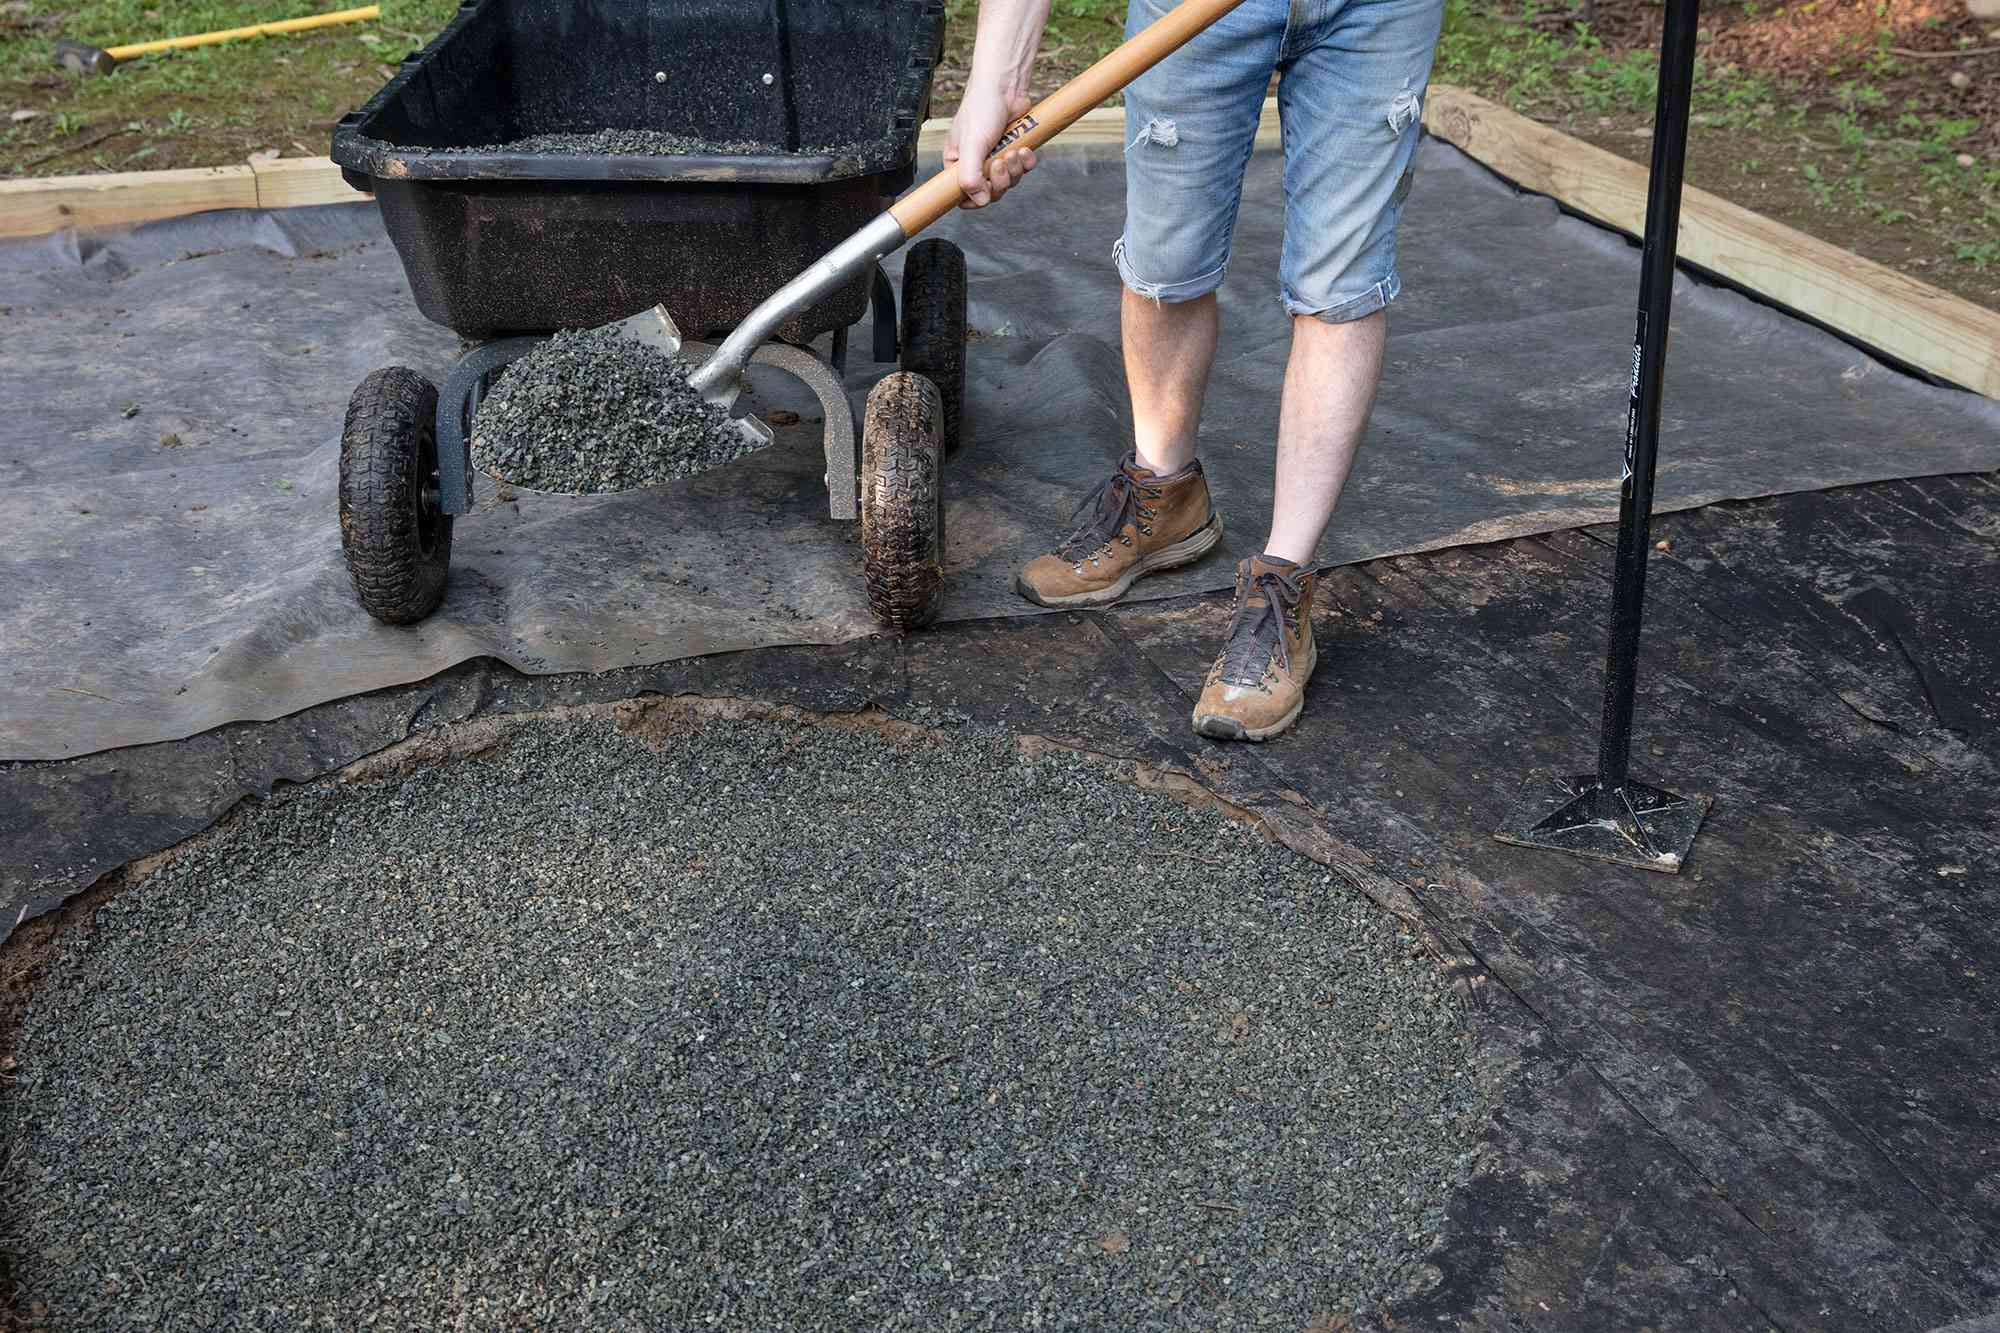 Gray drainage gravel added to circular location for fire pit with shovel